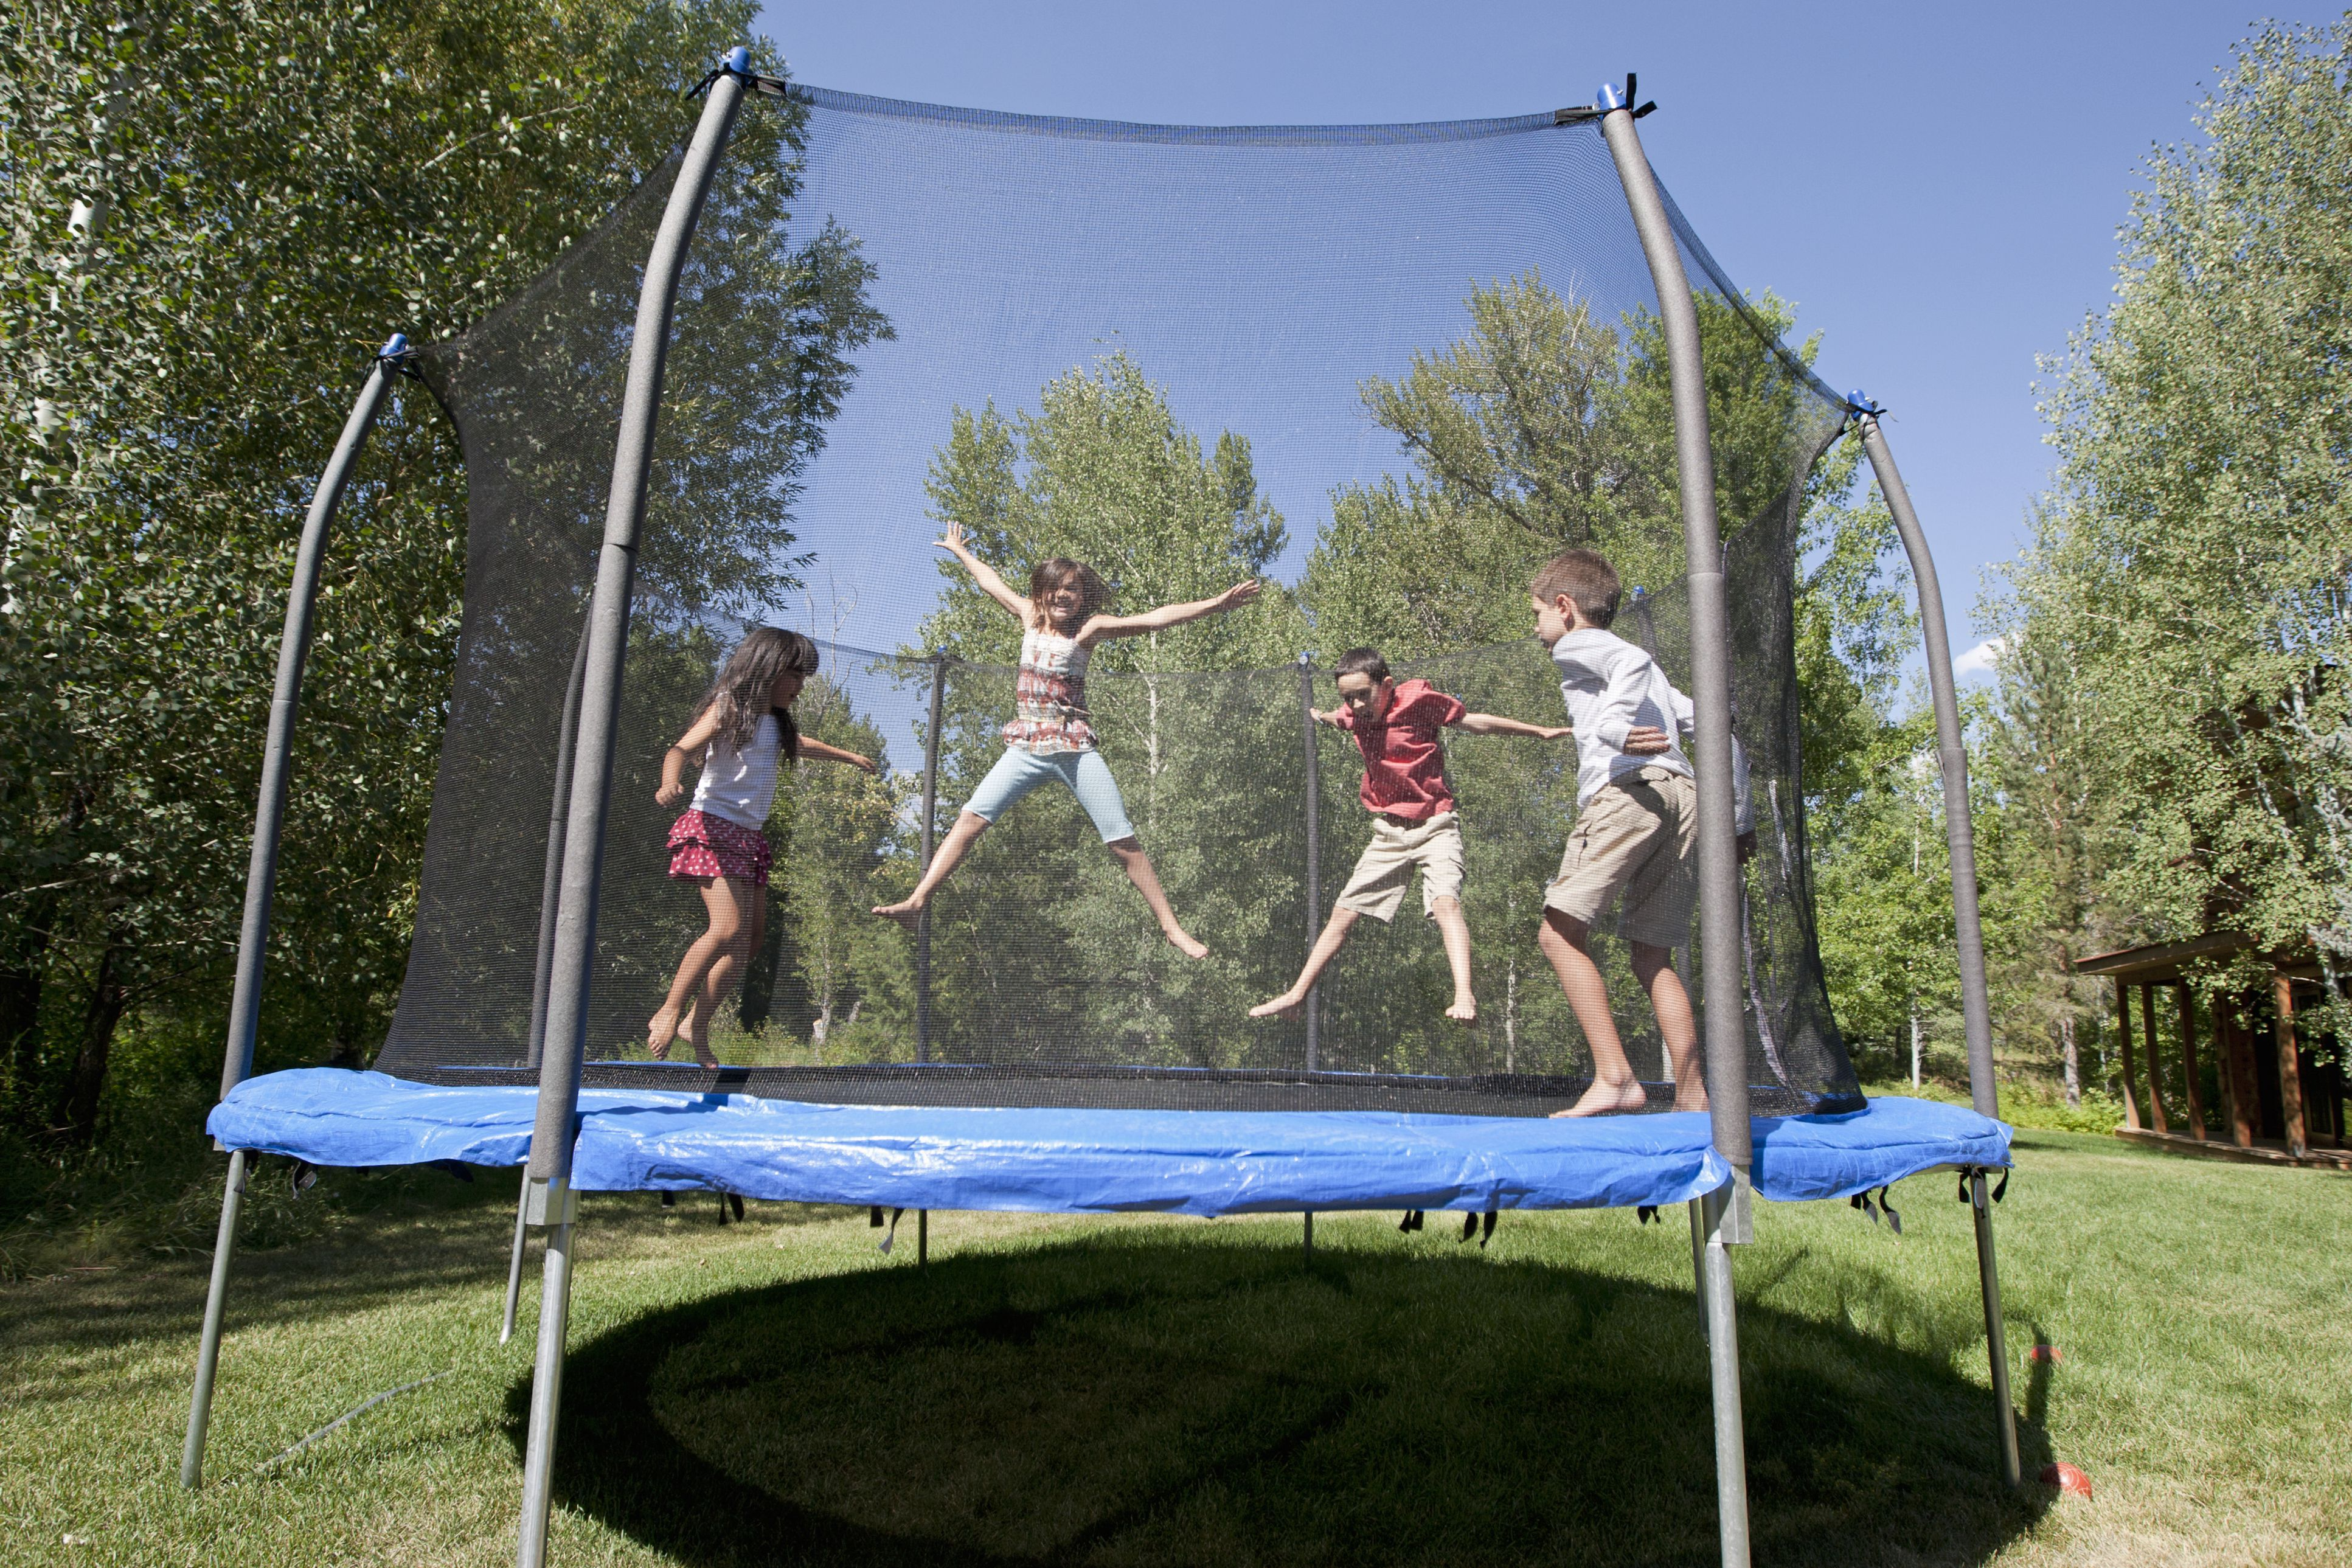 27++ What games can you play on a trampoline information